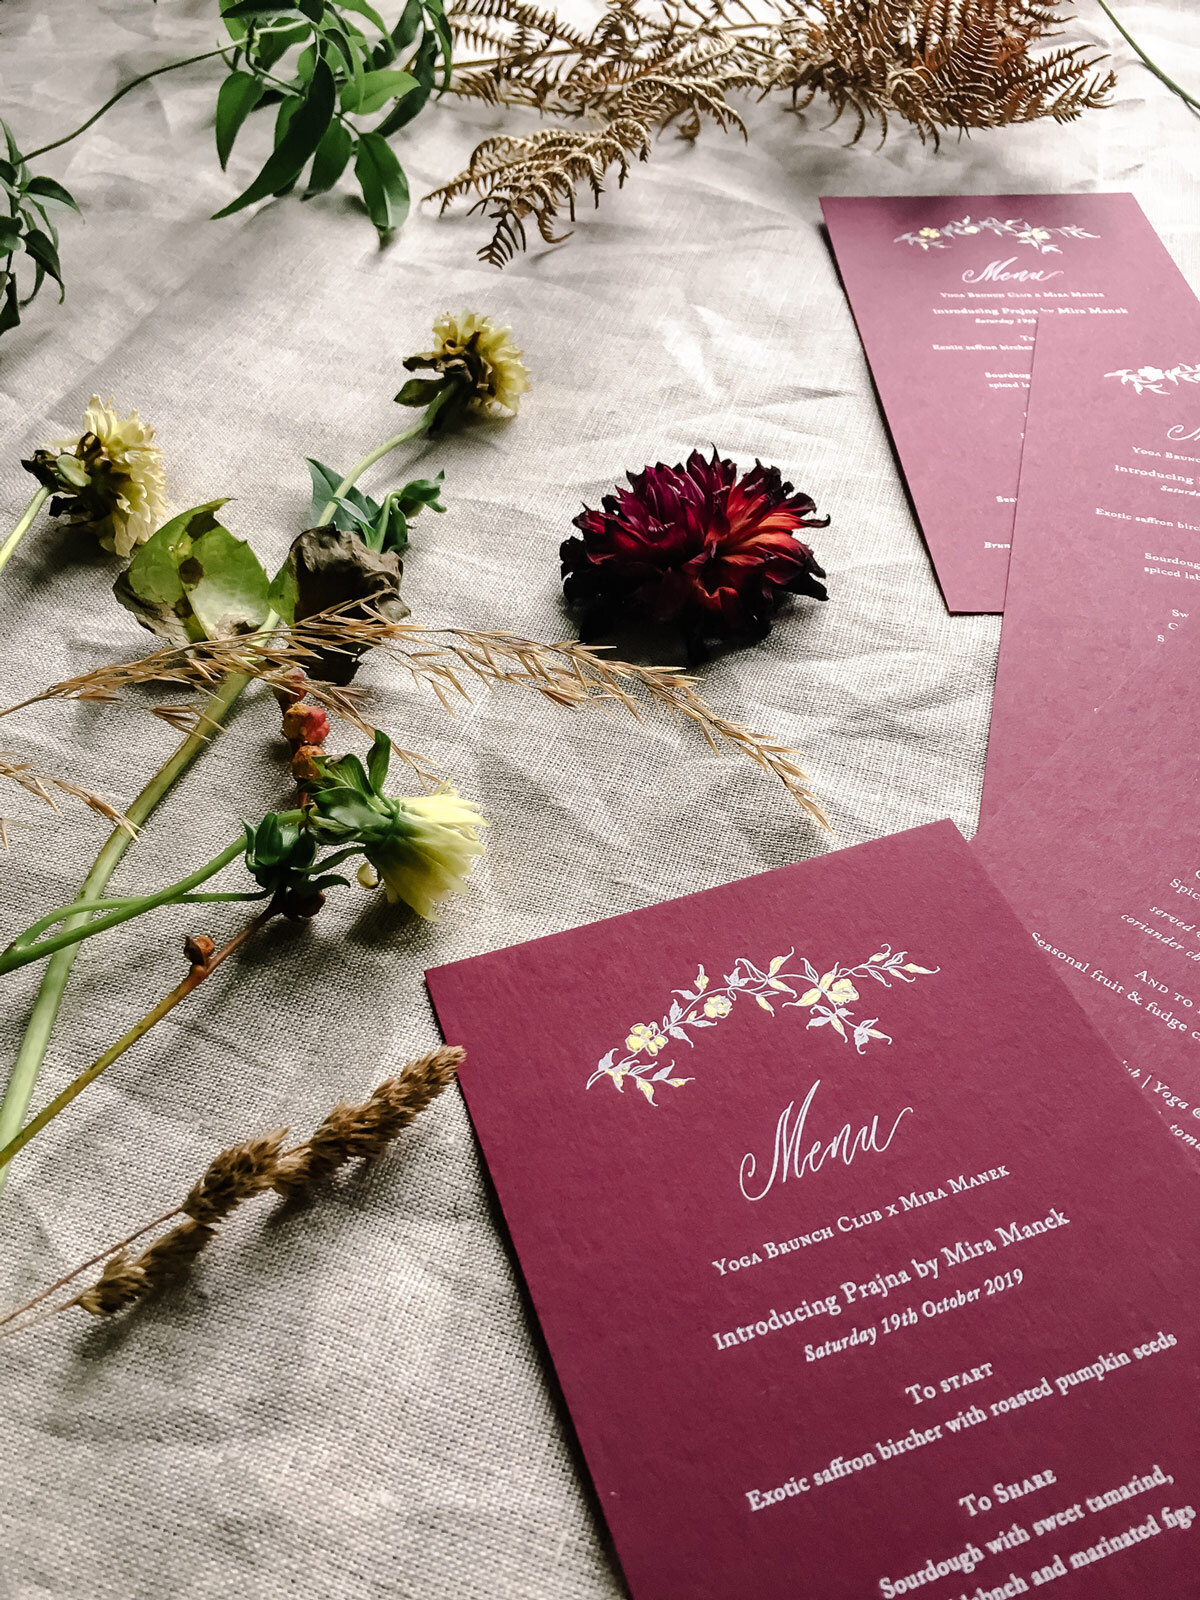 Bespoke burgundy menus featuring a floral illustration with touches of hand painted gold.